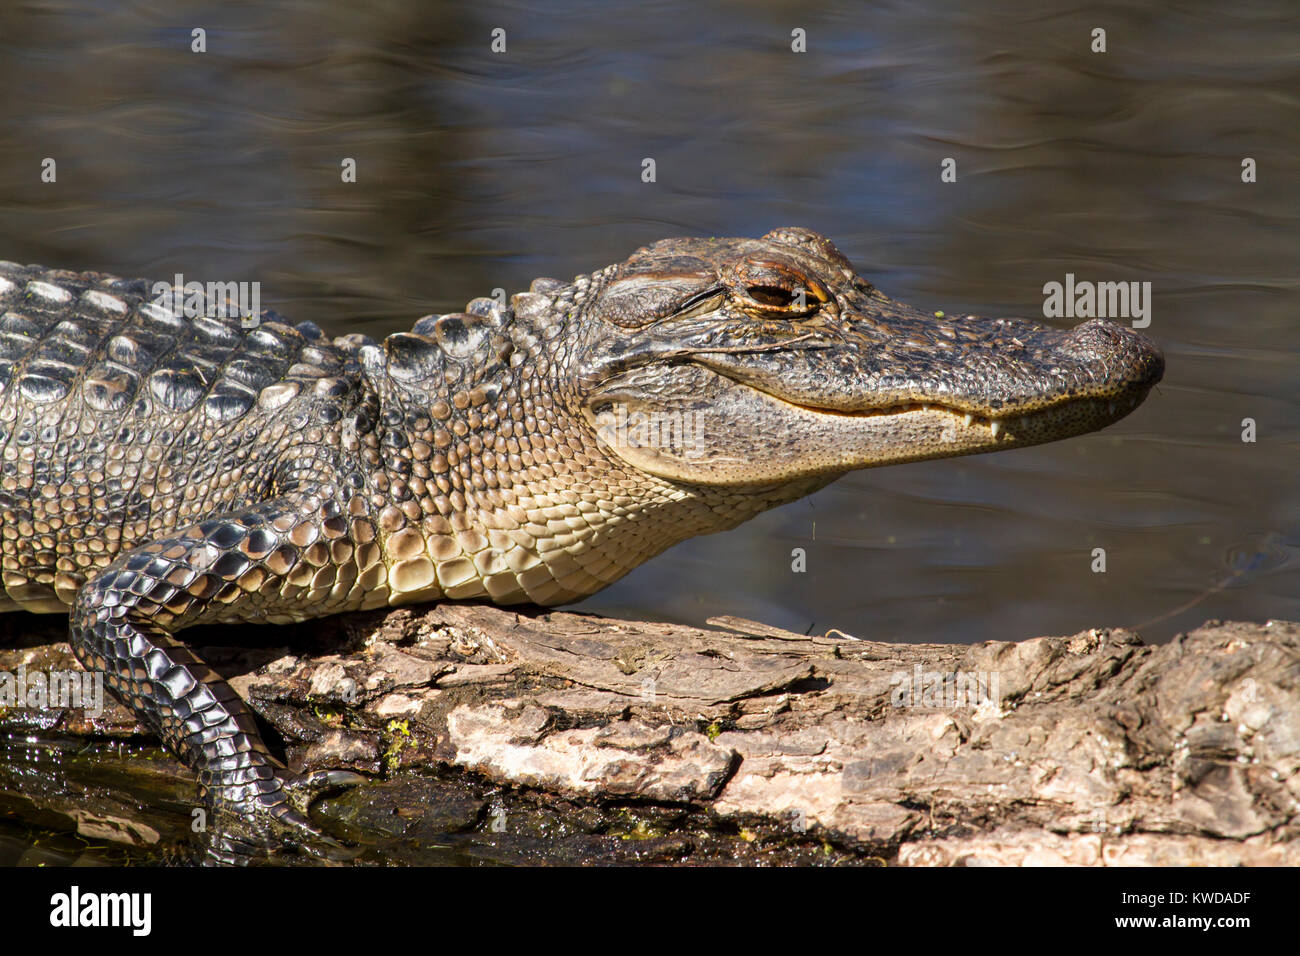 Young alligator close up - Stock Image